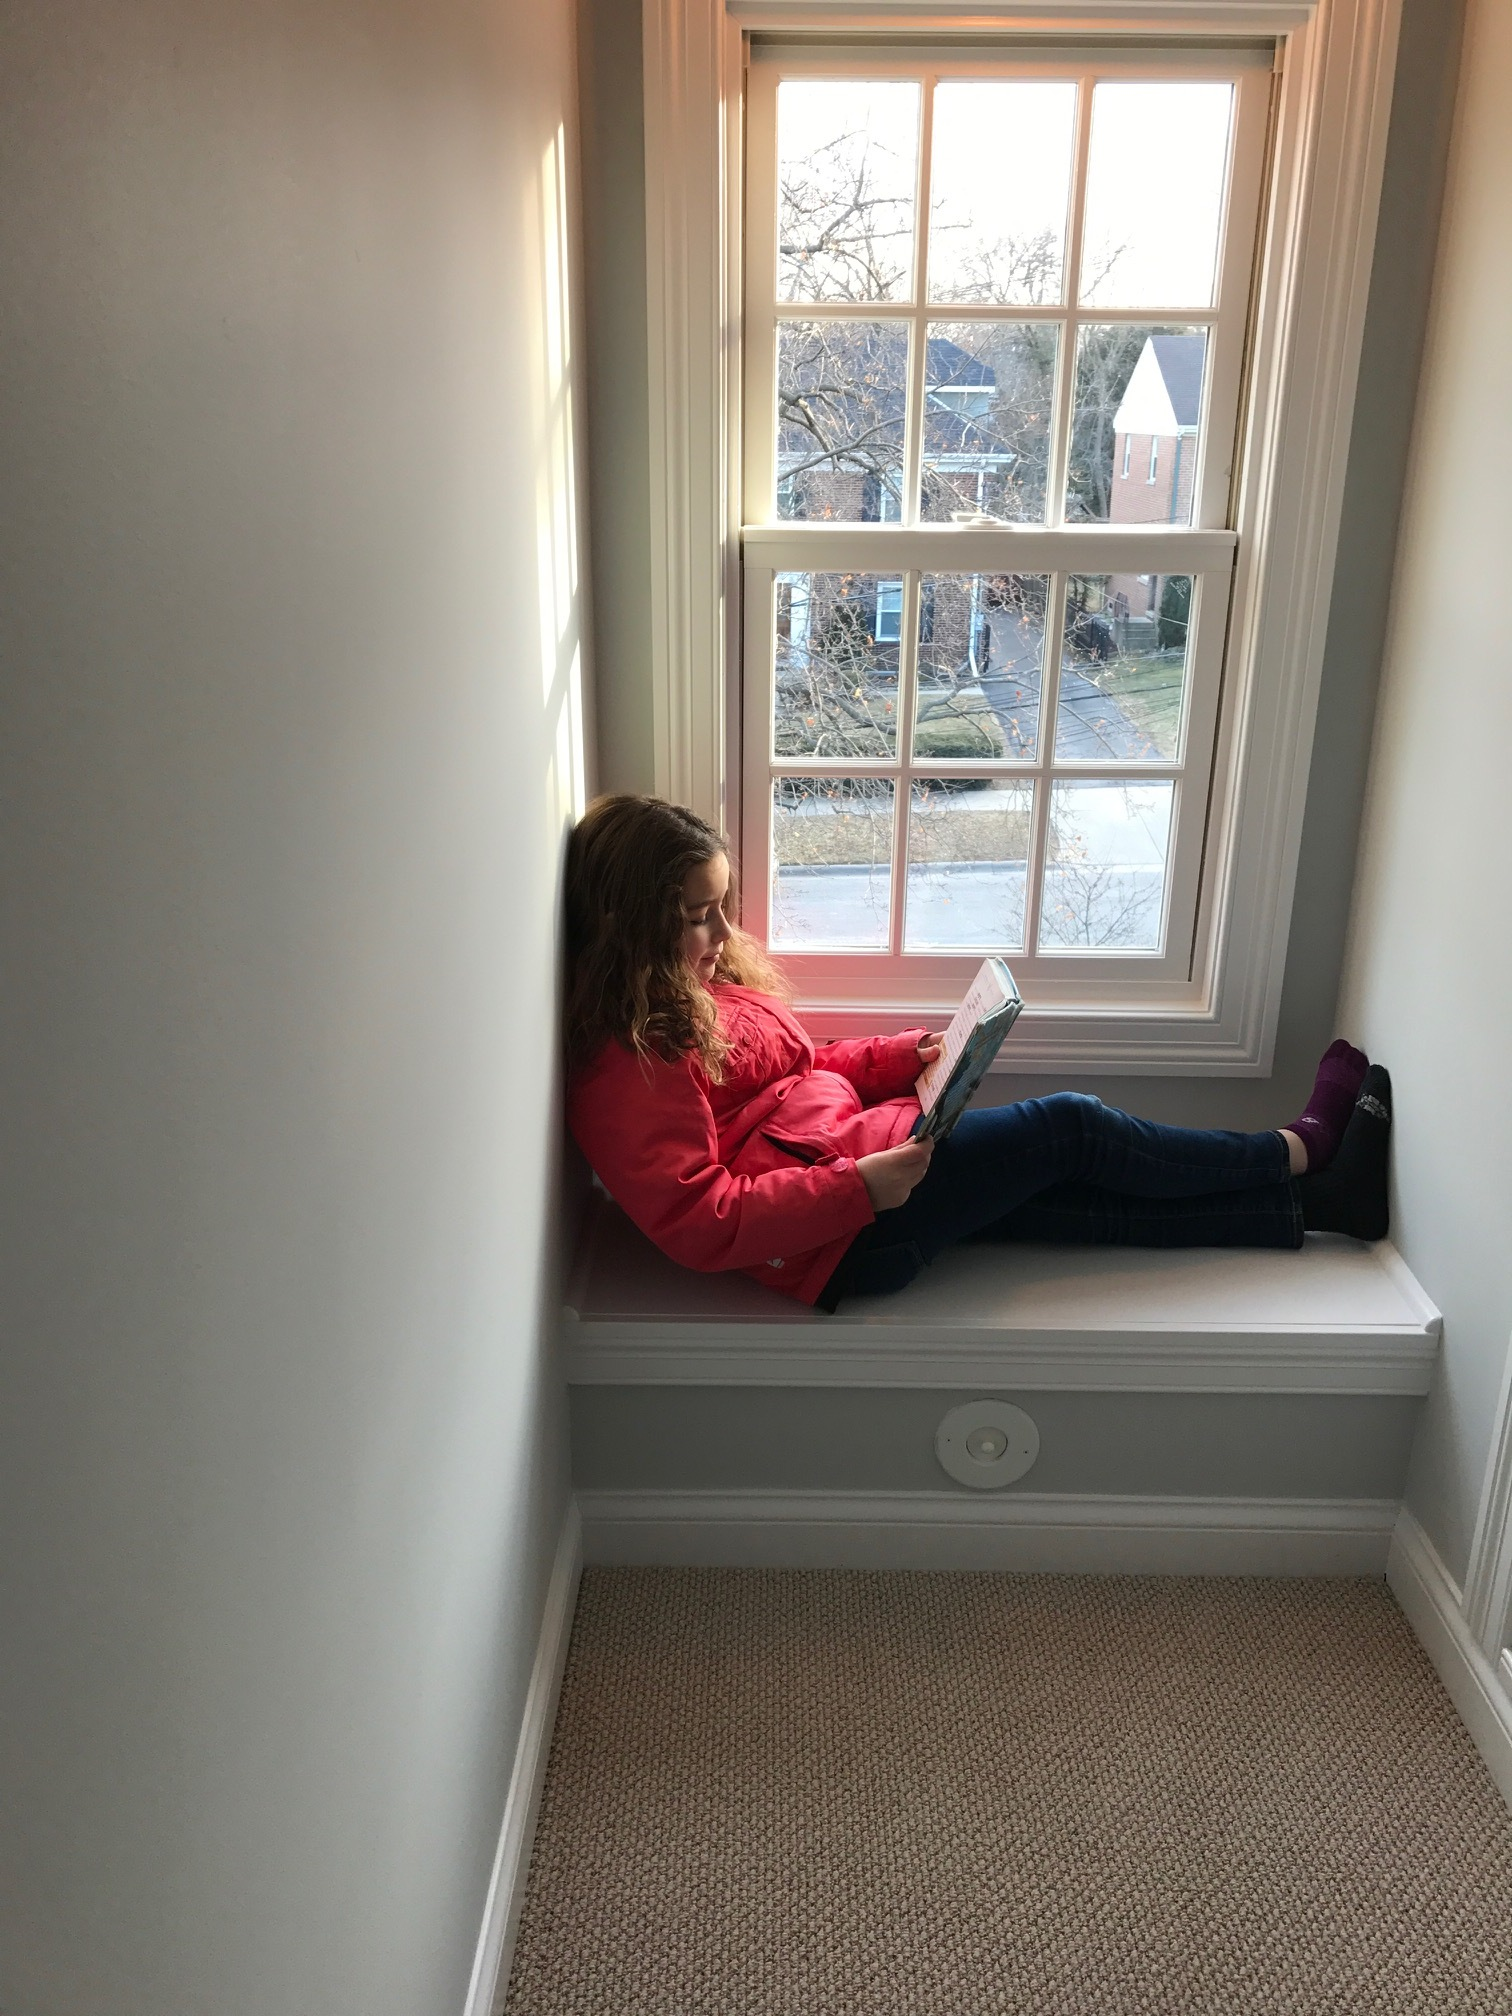 My 8-year old instinctively picked a good spot for reading. It feels a little like discovering buried treasure when I think that this attic was creaky, dark, and poorly insulated for more than 90 years. Sometimes unusual spaces have a purpose waiting to be revealed, or they must be pre-planned in new construction before the architect erases them in the quest for efficient space utilization.